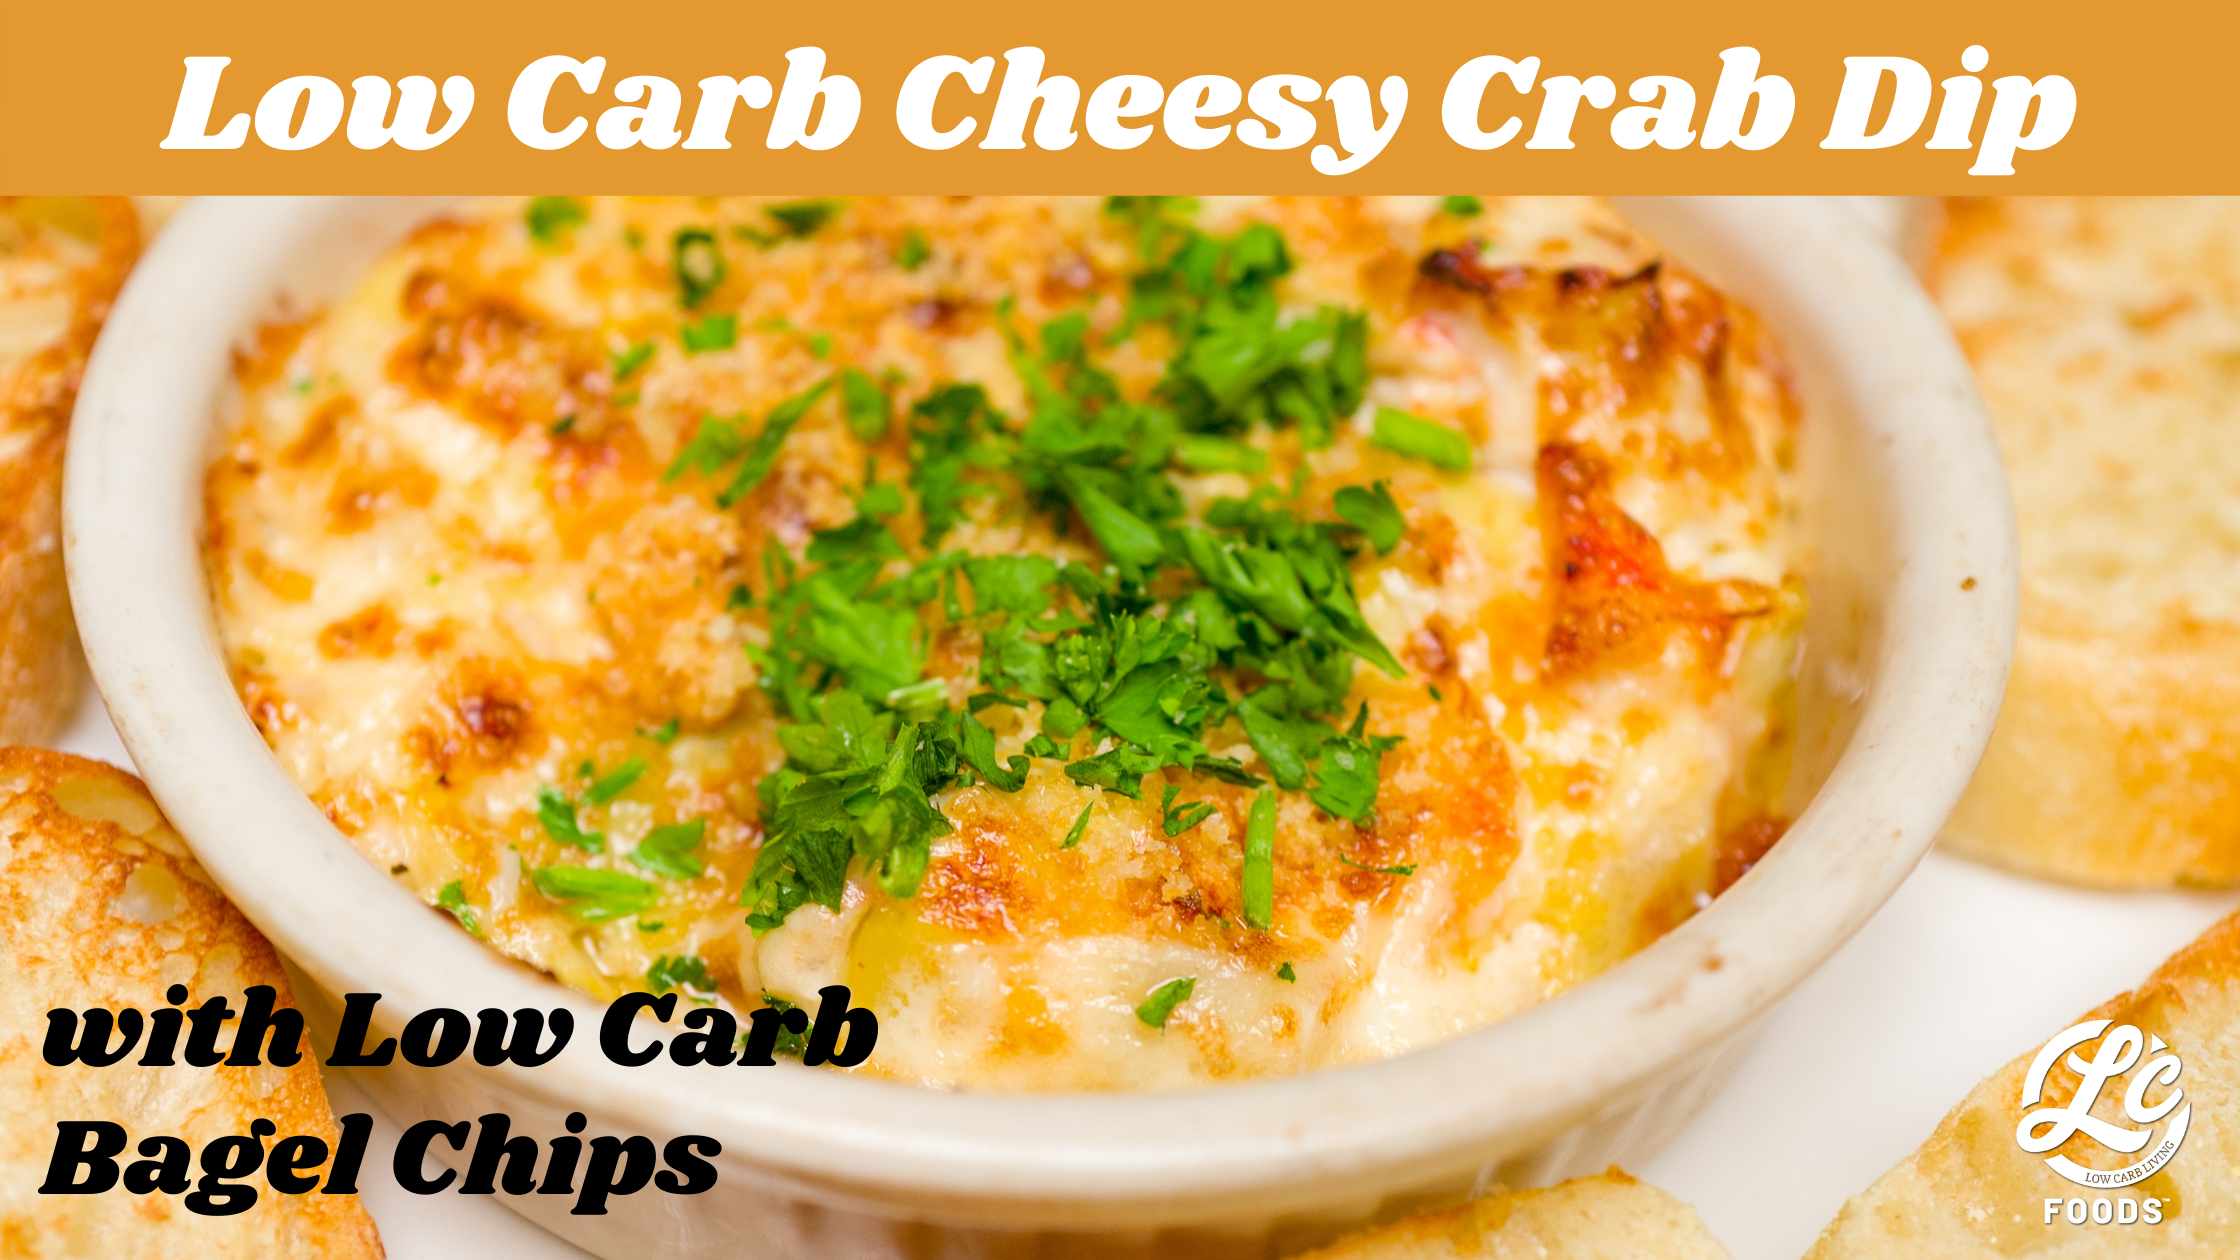 Thumbnail for Low Carb Cheesy Crab Dip with Bagel Chips